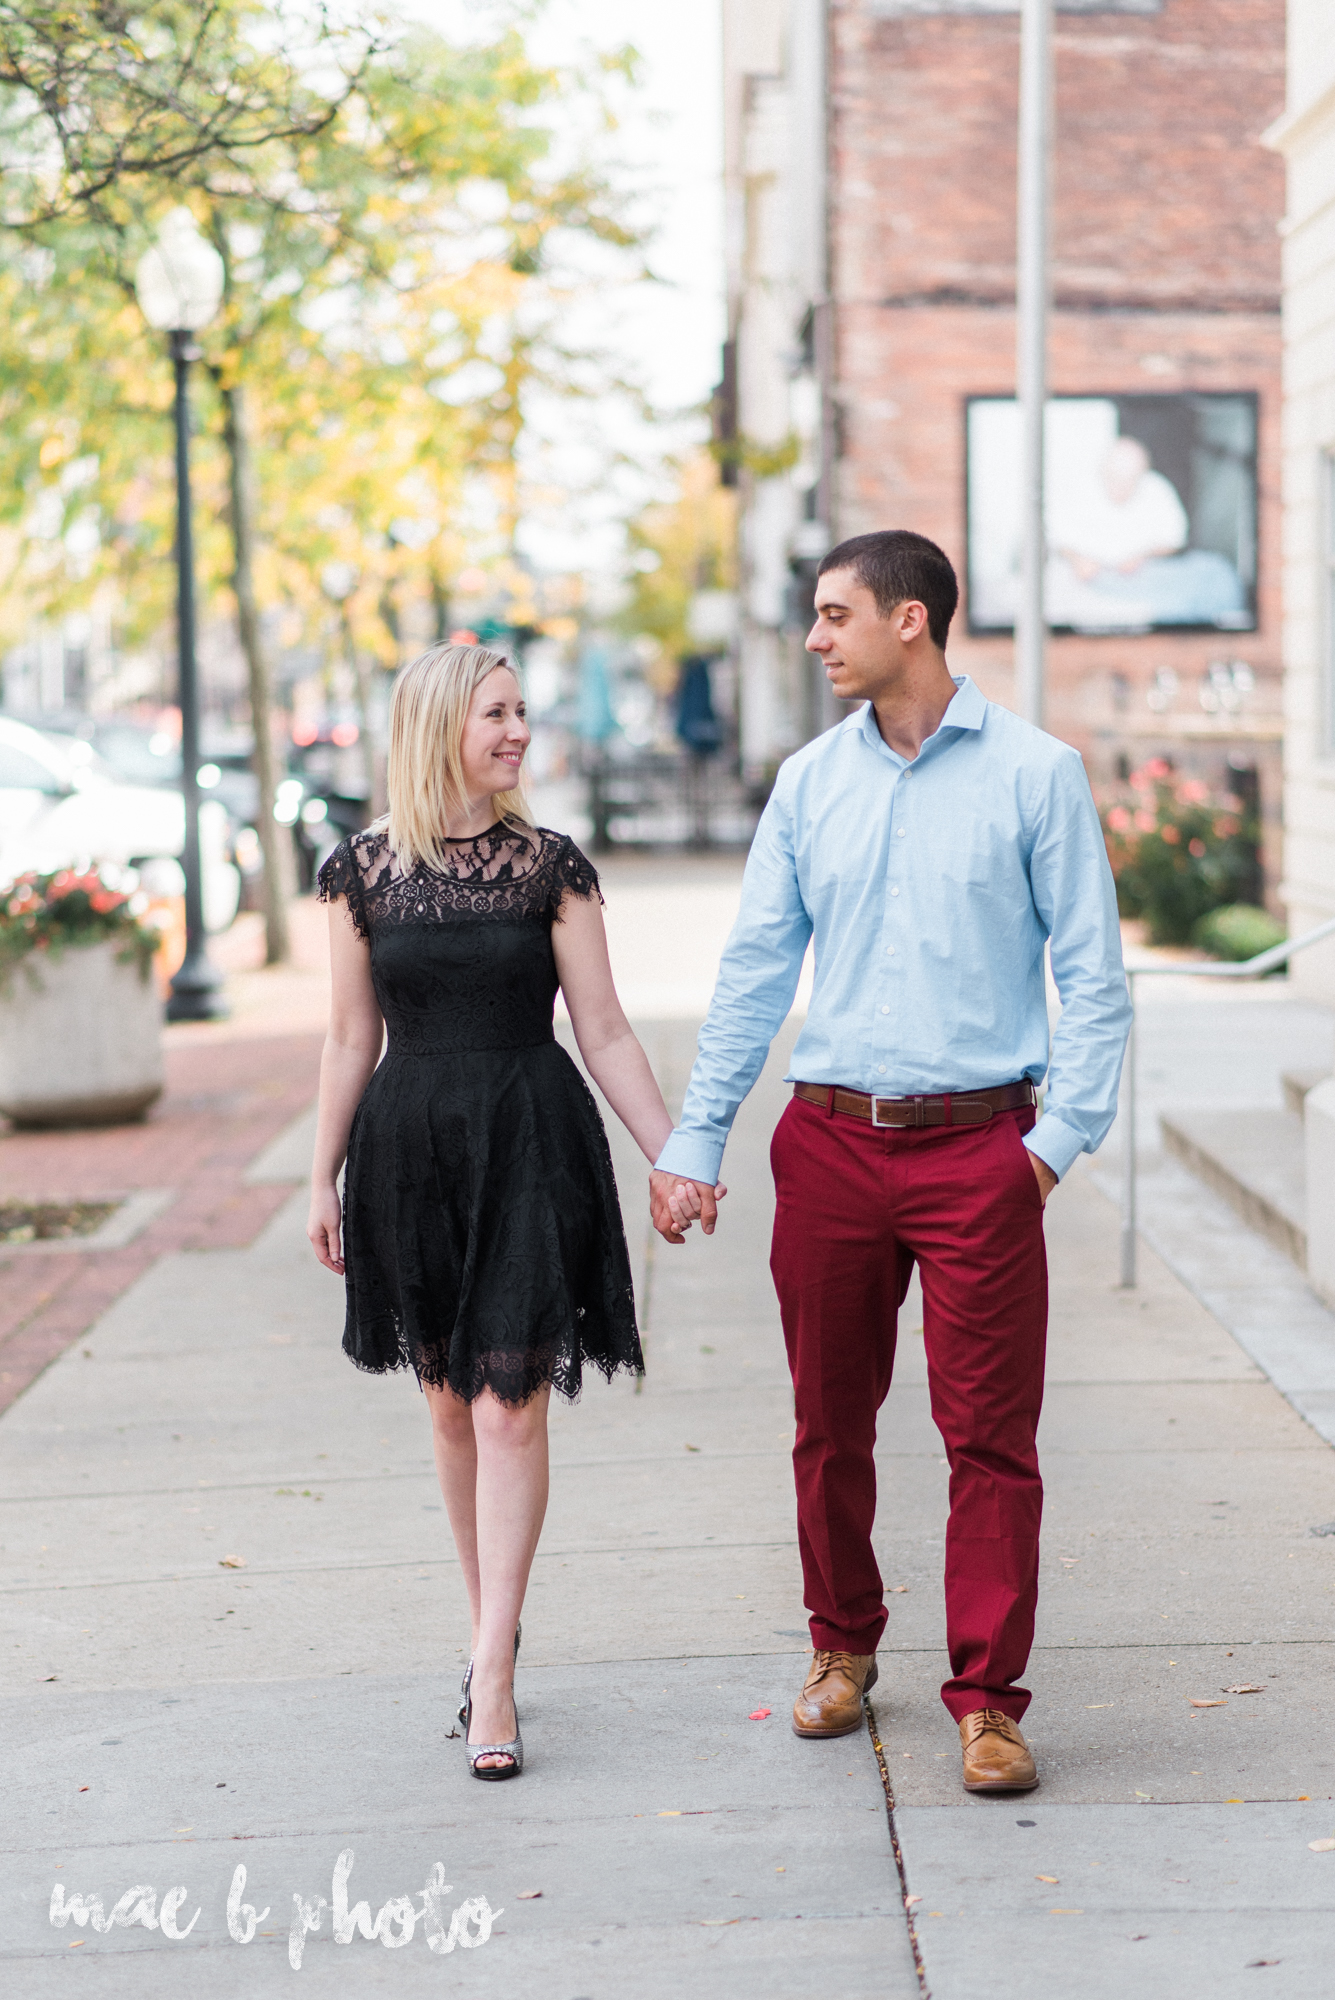 fall engagement session downtown youngstown on federal street photographed by cleveland wedding photographer mae b photo-1.jpg